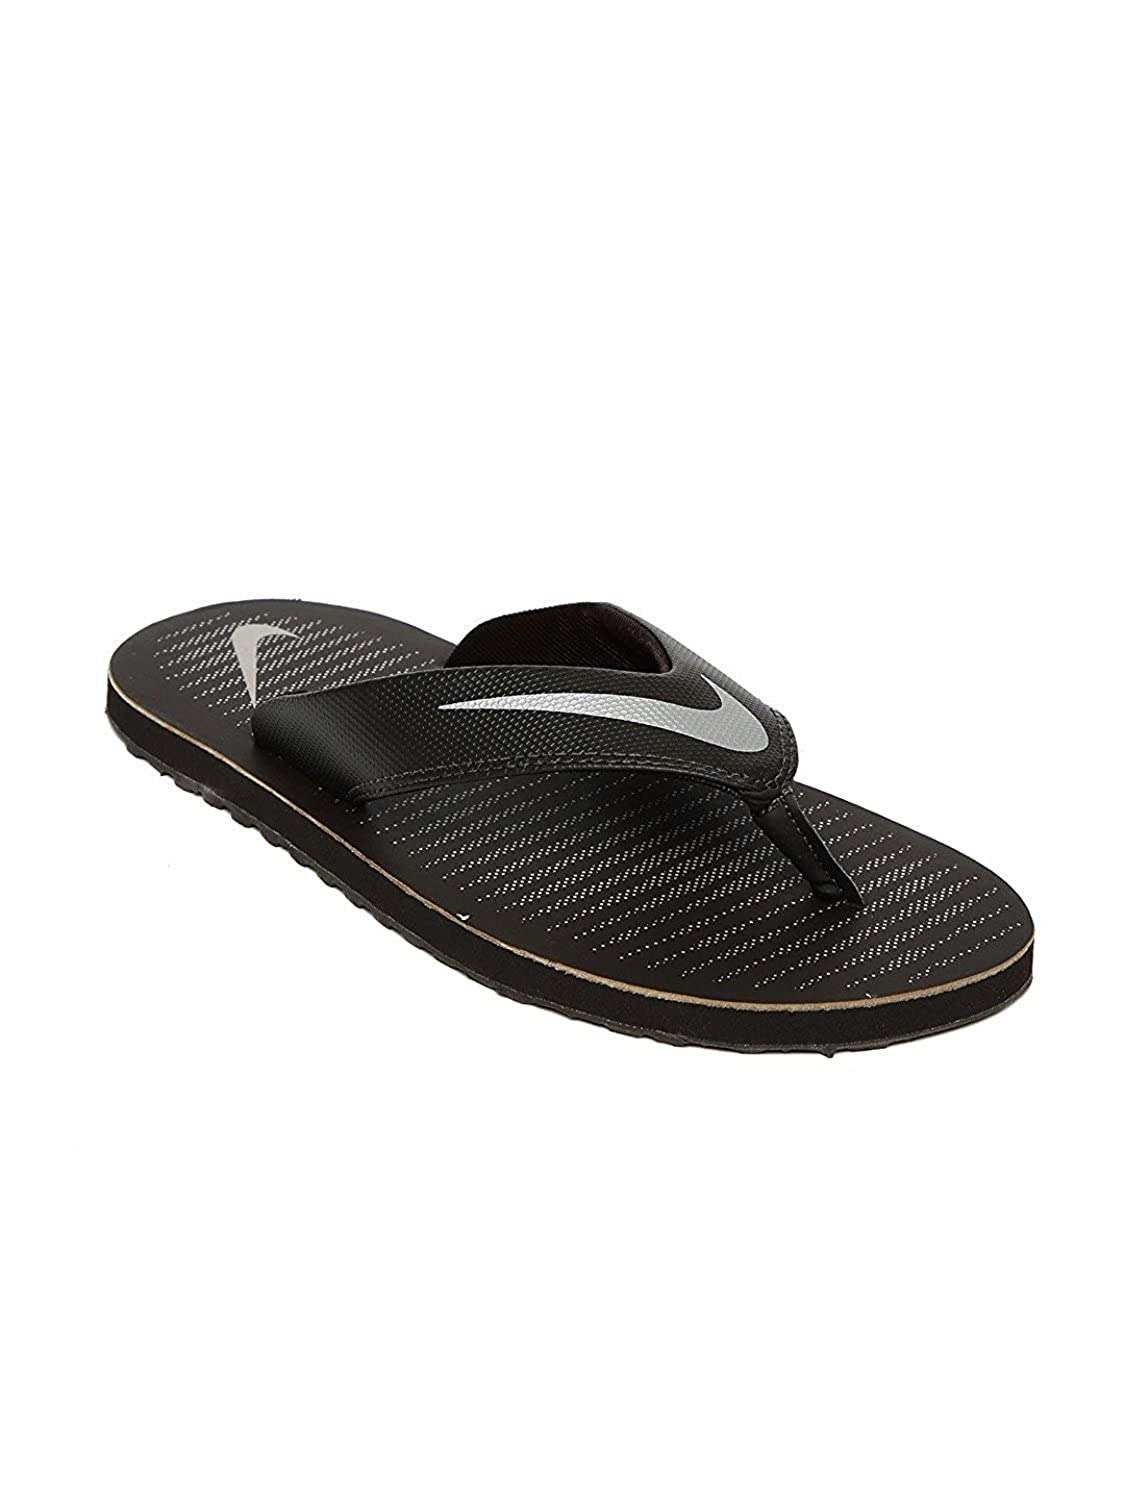 71aaf7e09 Nike Men s Chroma Thong 5 Flip Flops Thong Sandals  Buy Online at Low  Prices in India - Amazon.in